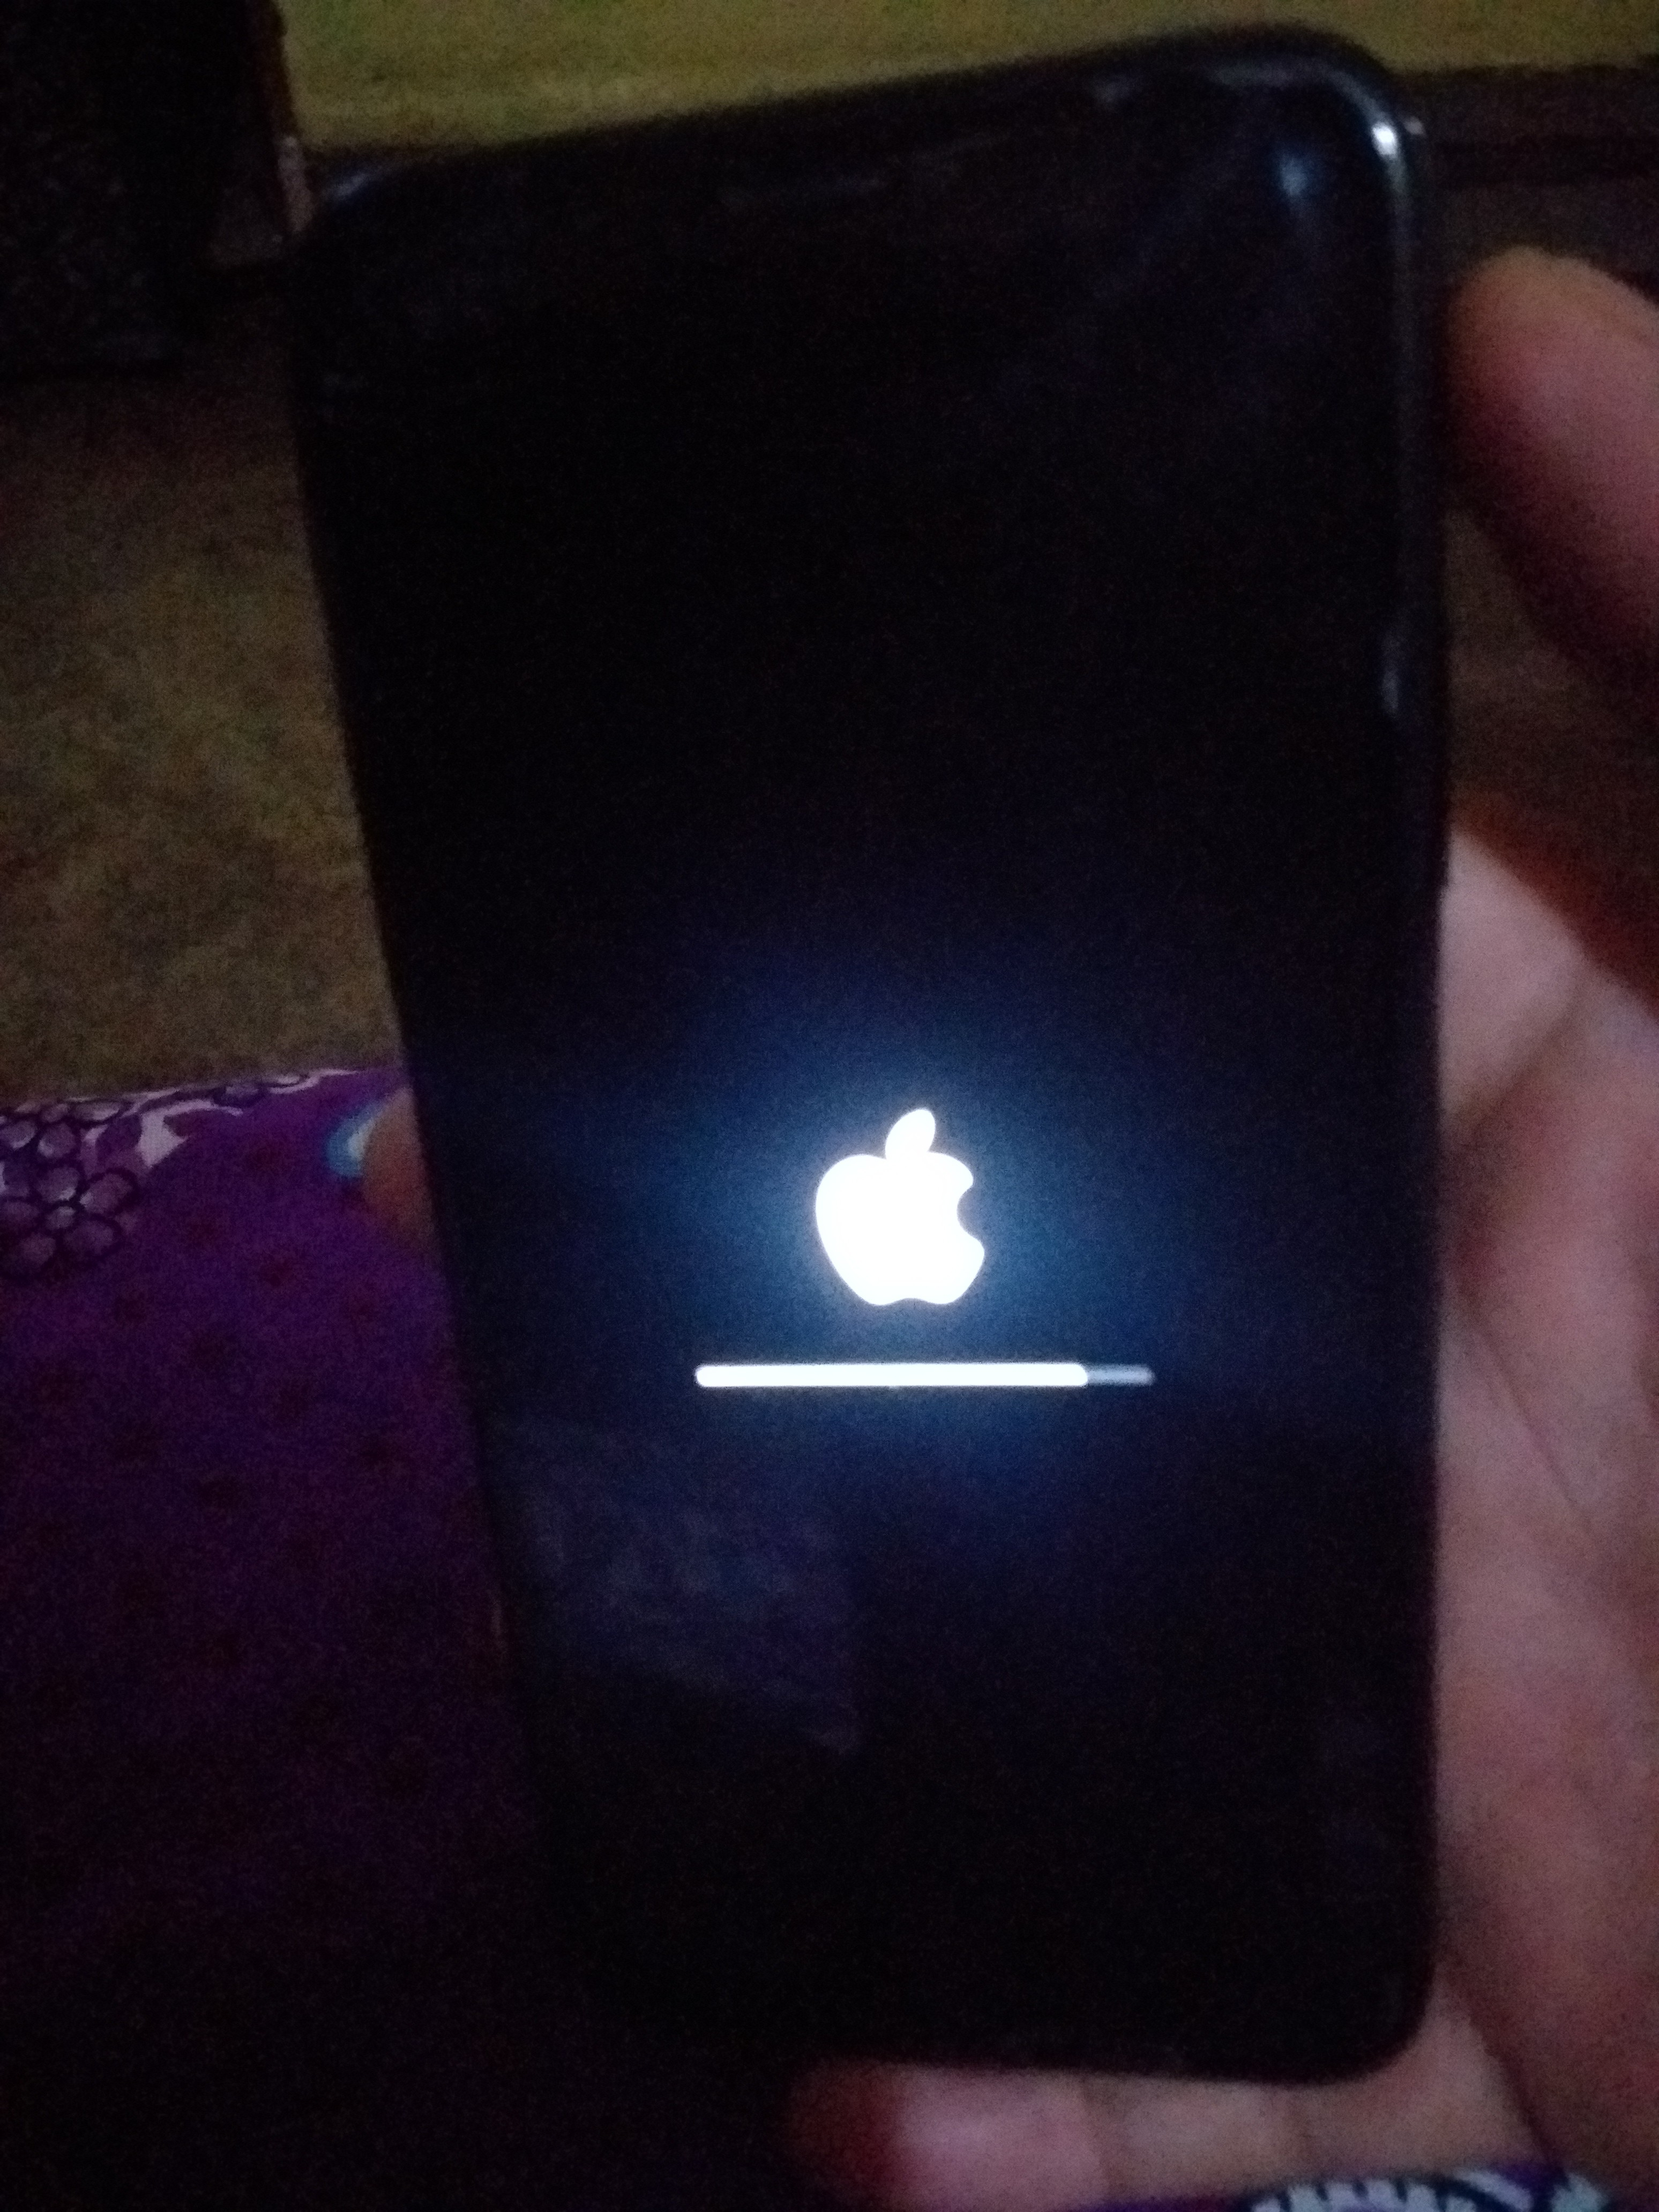 iphone froze while updating